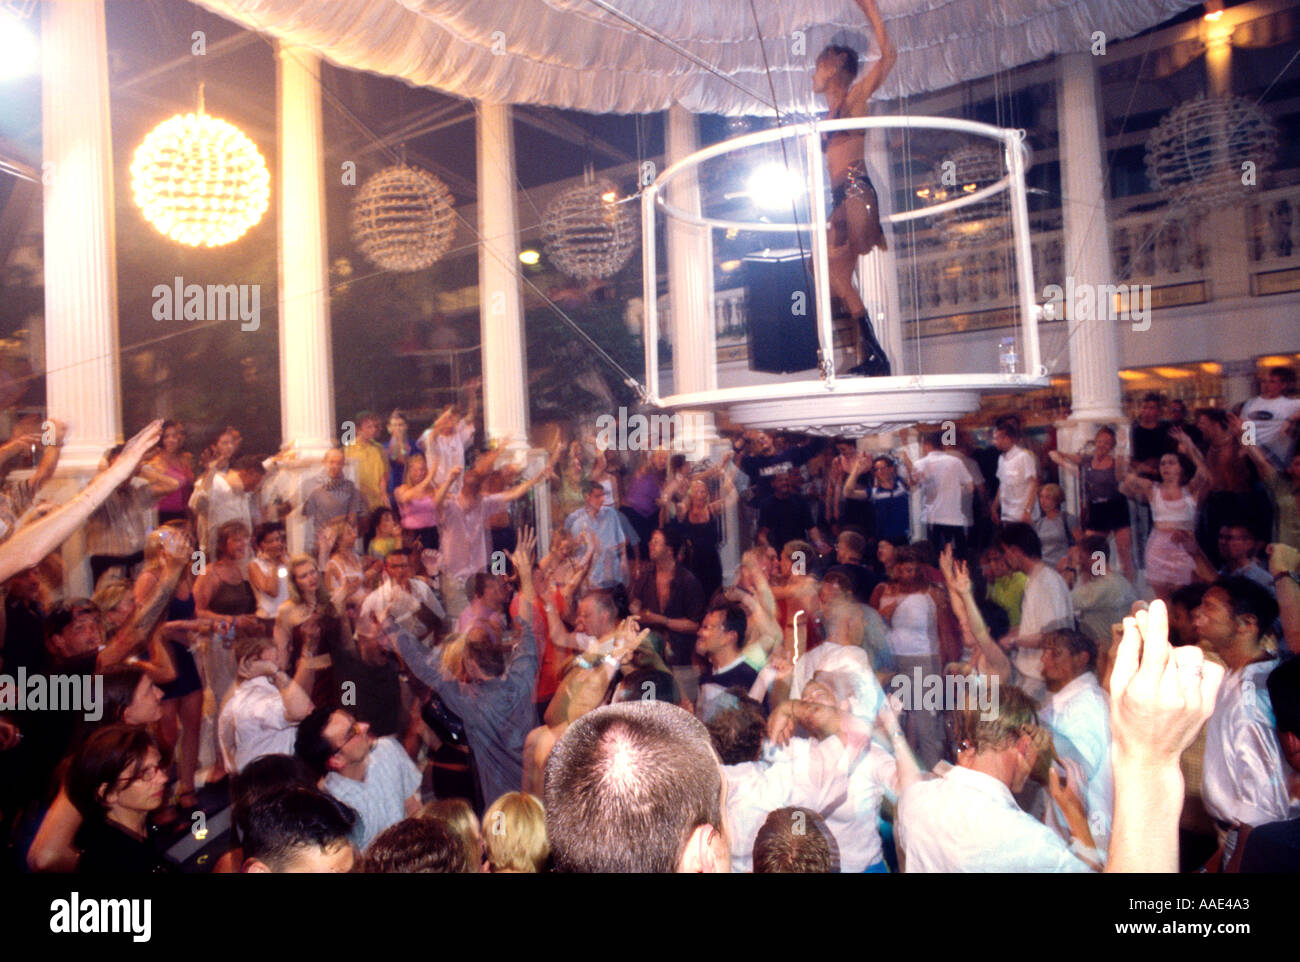 Es Paradis nightclub Ibiza, Spain - Stock Image